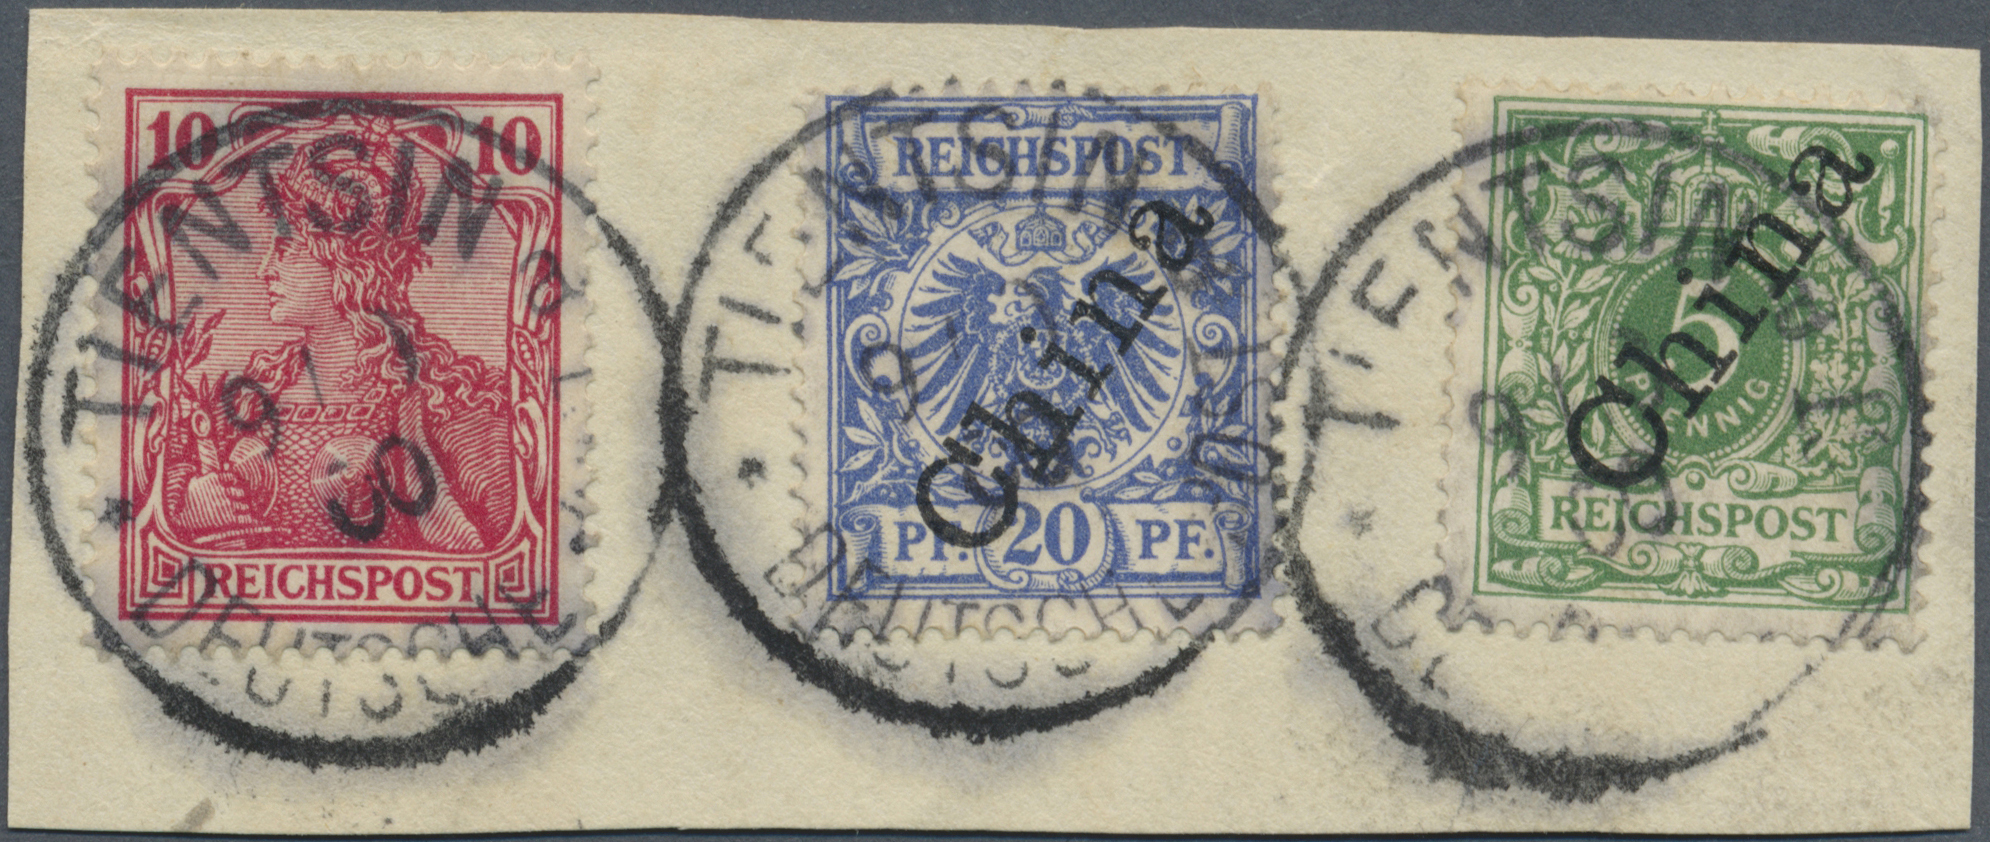 Lot 21899 - Deutsche Post in China - Mitläufer  -  Auktionshaus Christoph Gärtner GmbH & Co. KG Single lots Germany + Picture Postcards. Auction #39 Day 5